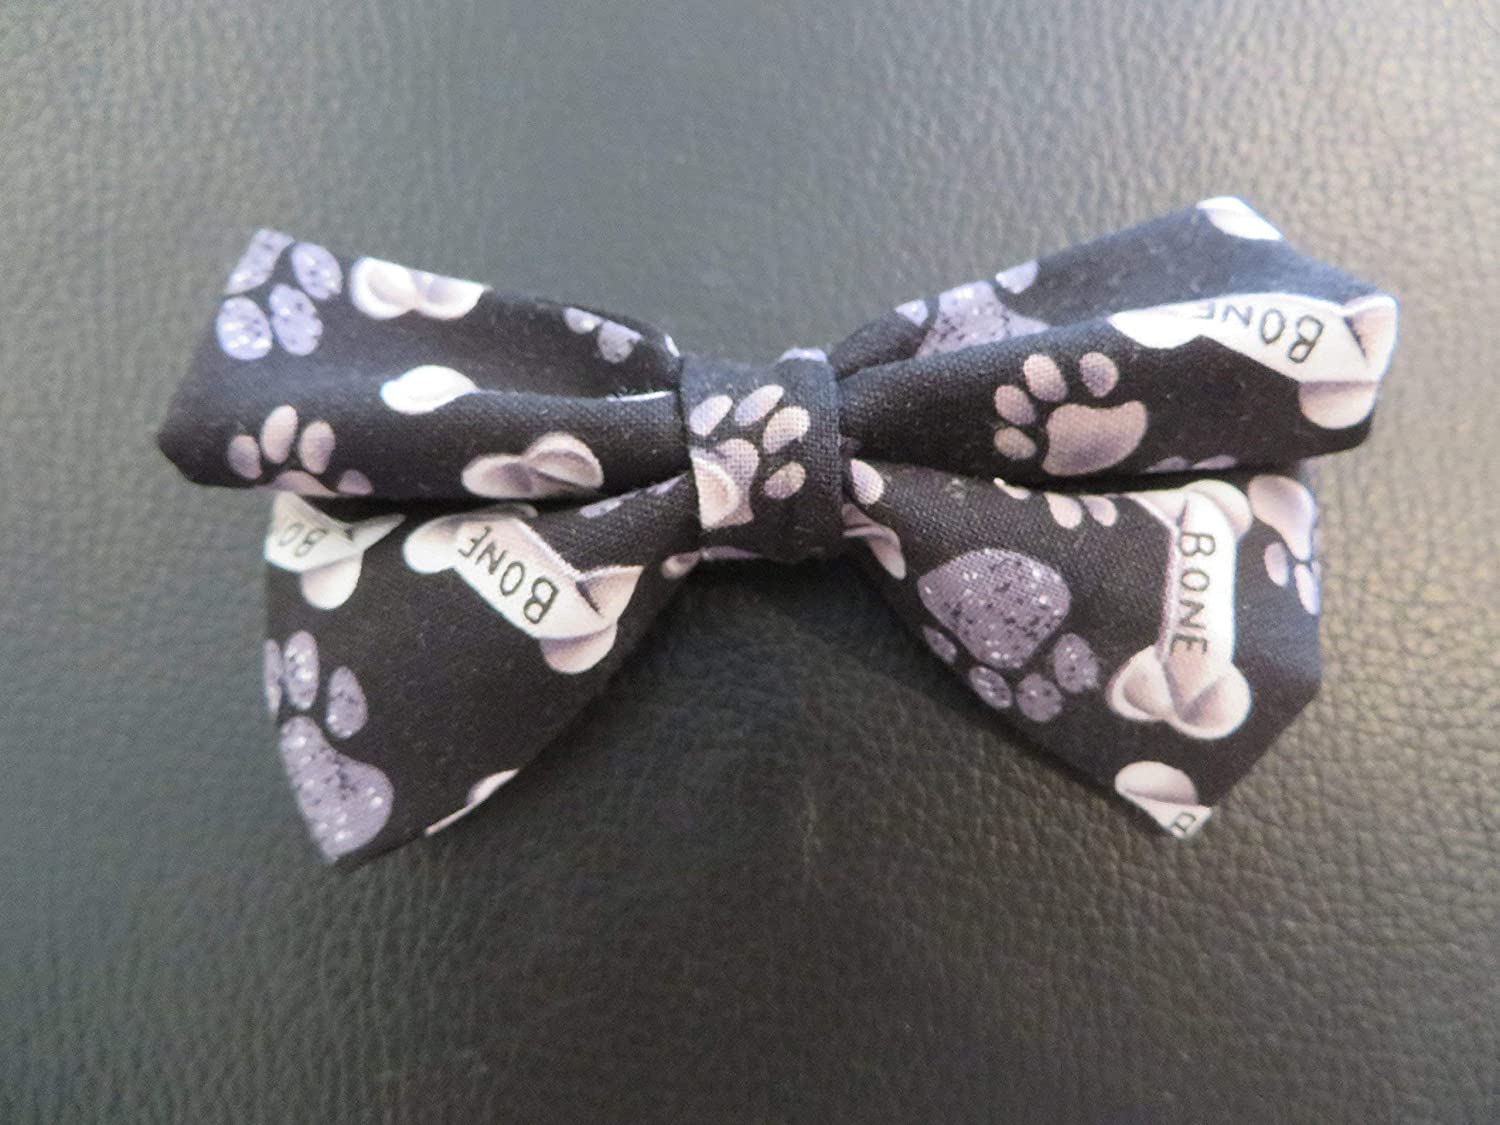 Dog Bow Tie in Grey, Black, and White Paws and Bones - Small 4 Only